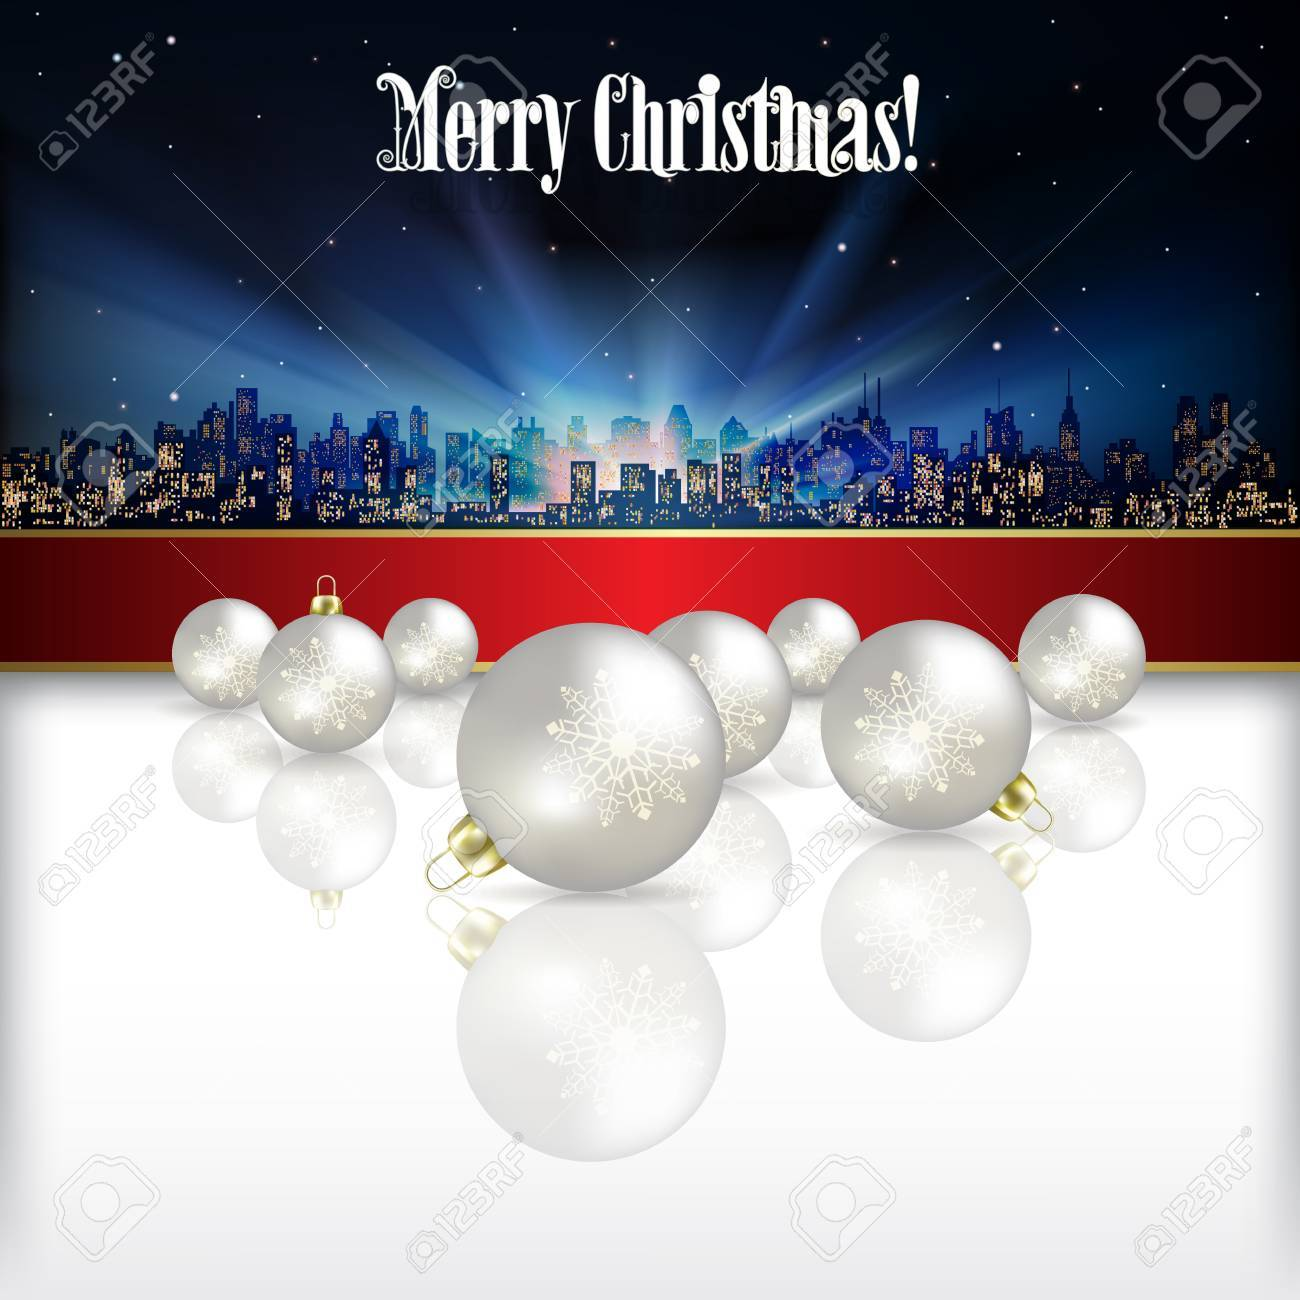 Abstract celebration background with silhouette of city and Christmas decorations Stock Vector - 21425693